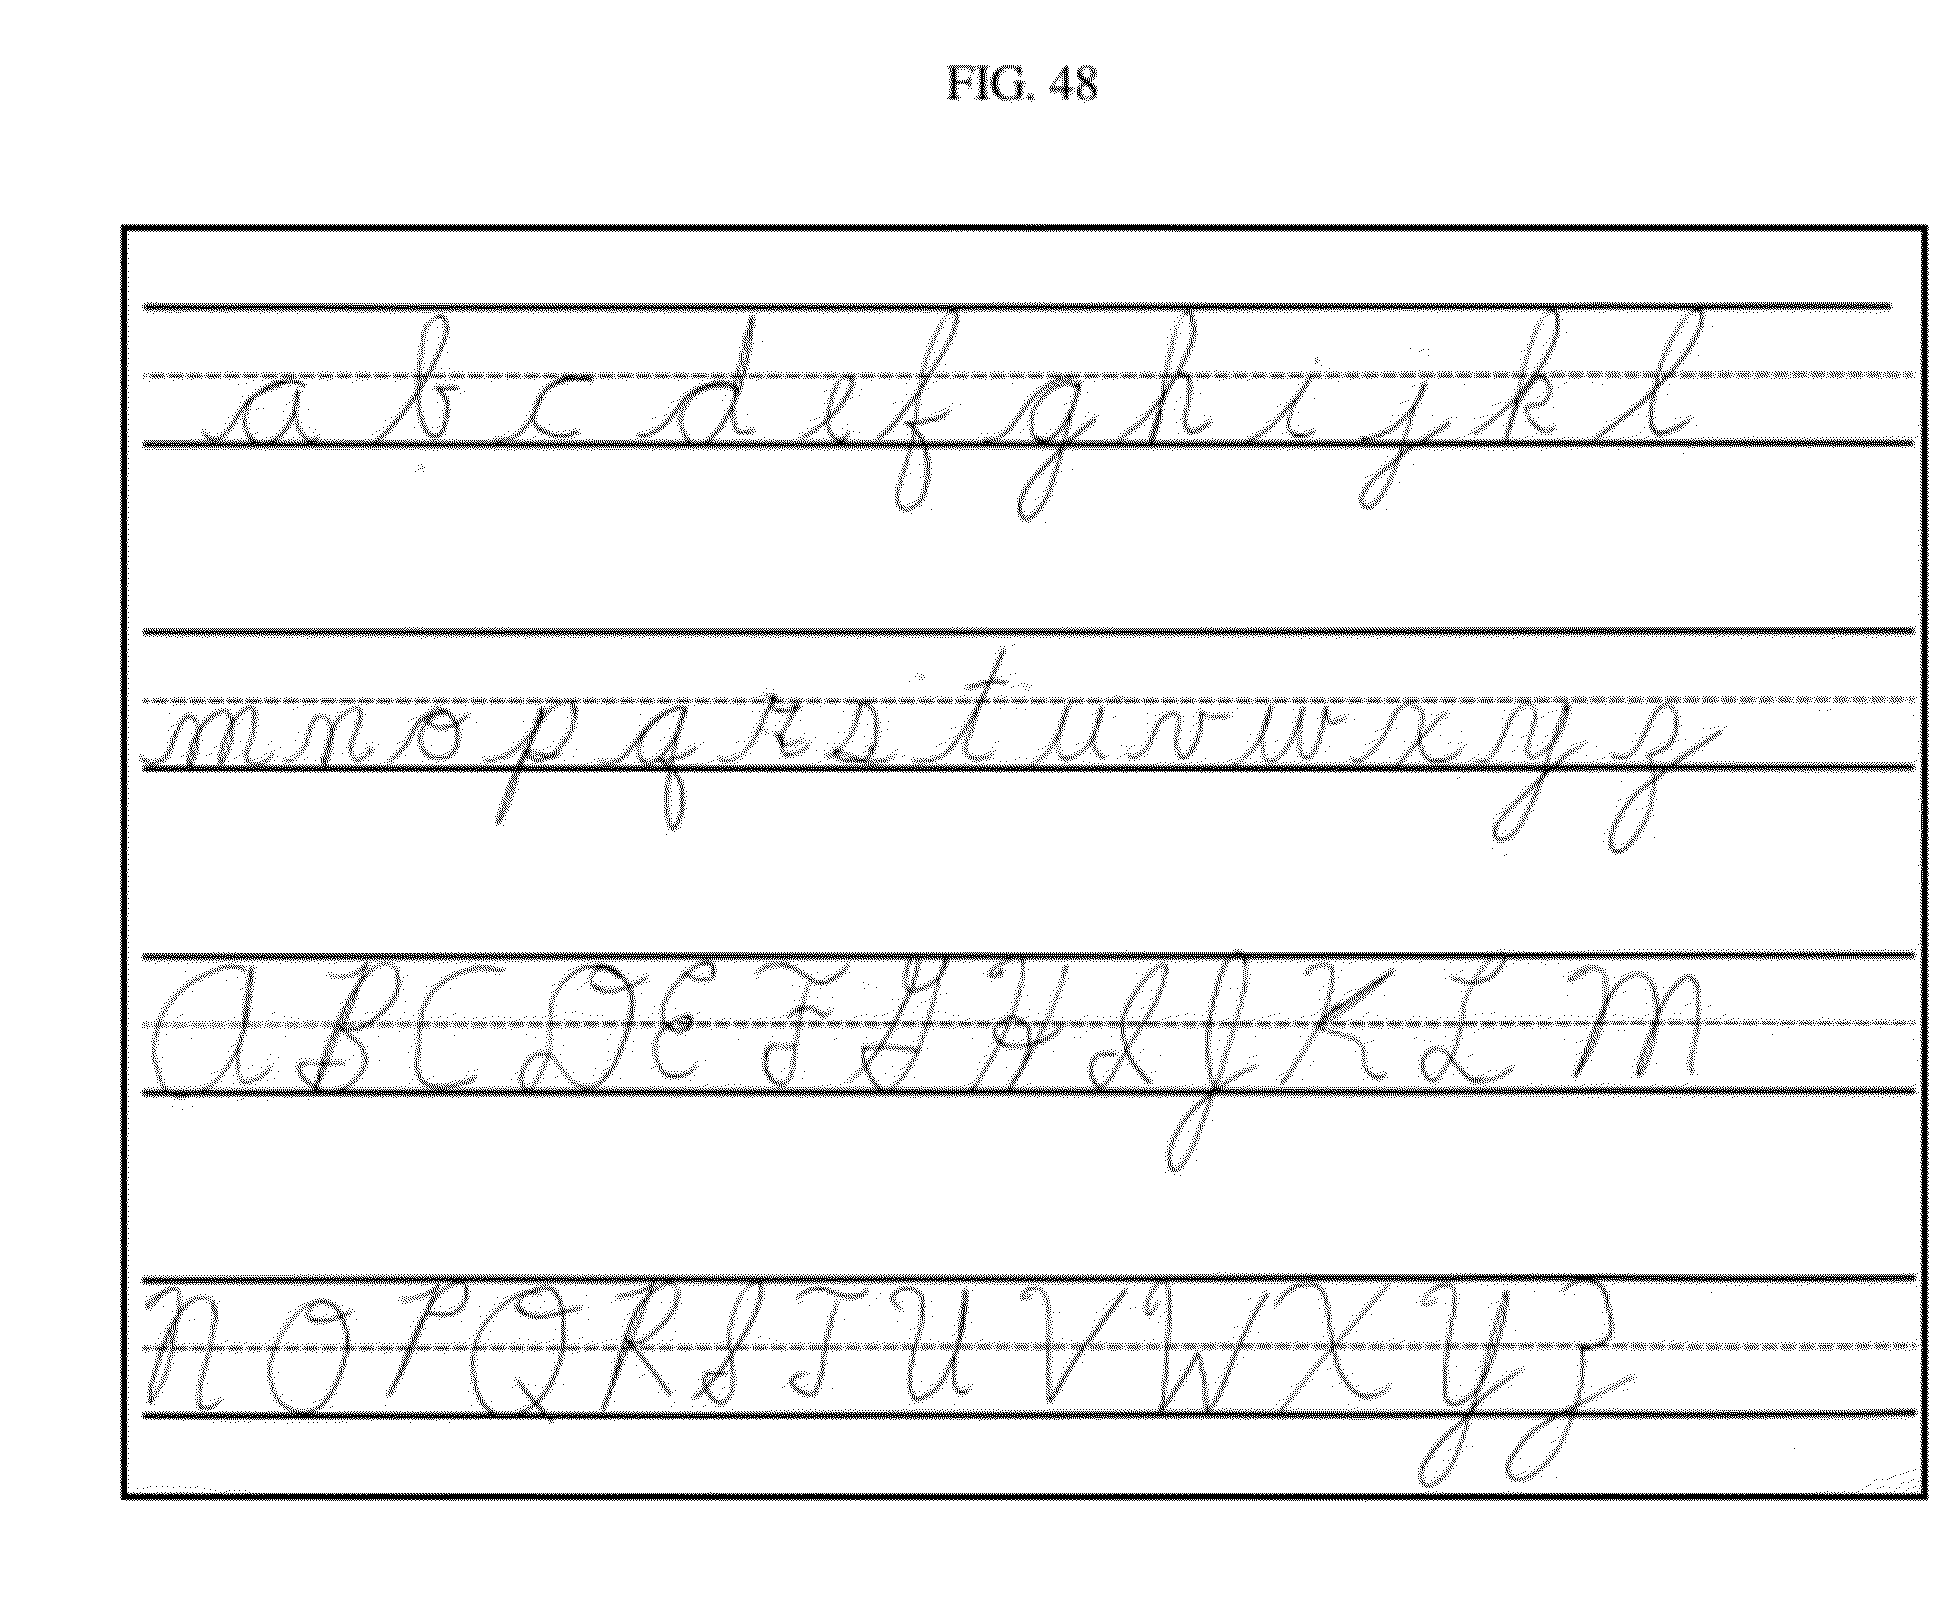 worksheet Practice Cursive Writing patent us20120100511 drawing cartoons to learn cursive writing drawing